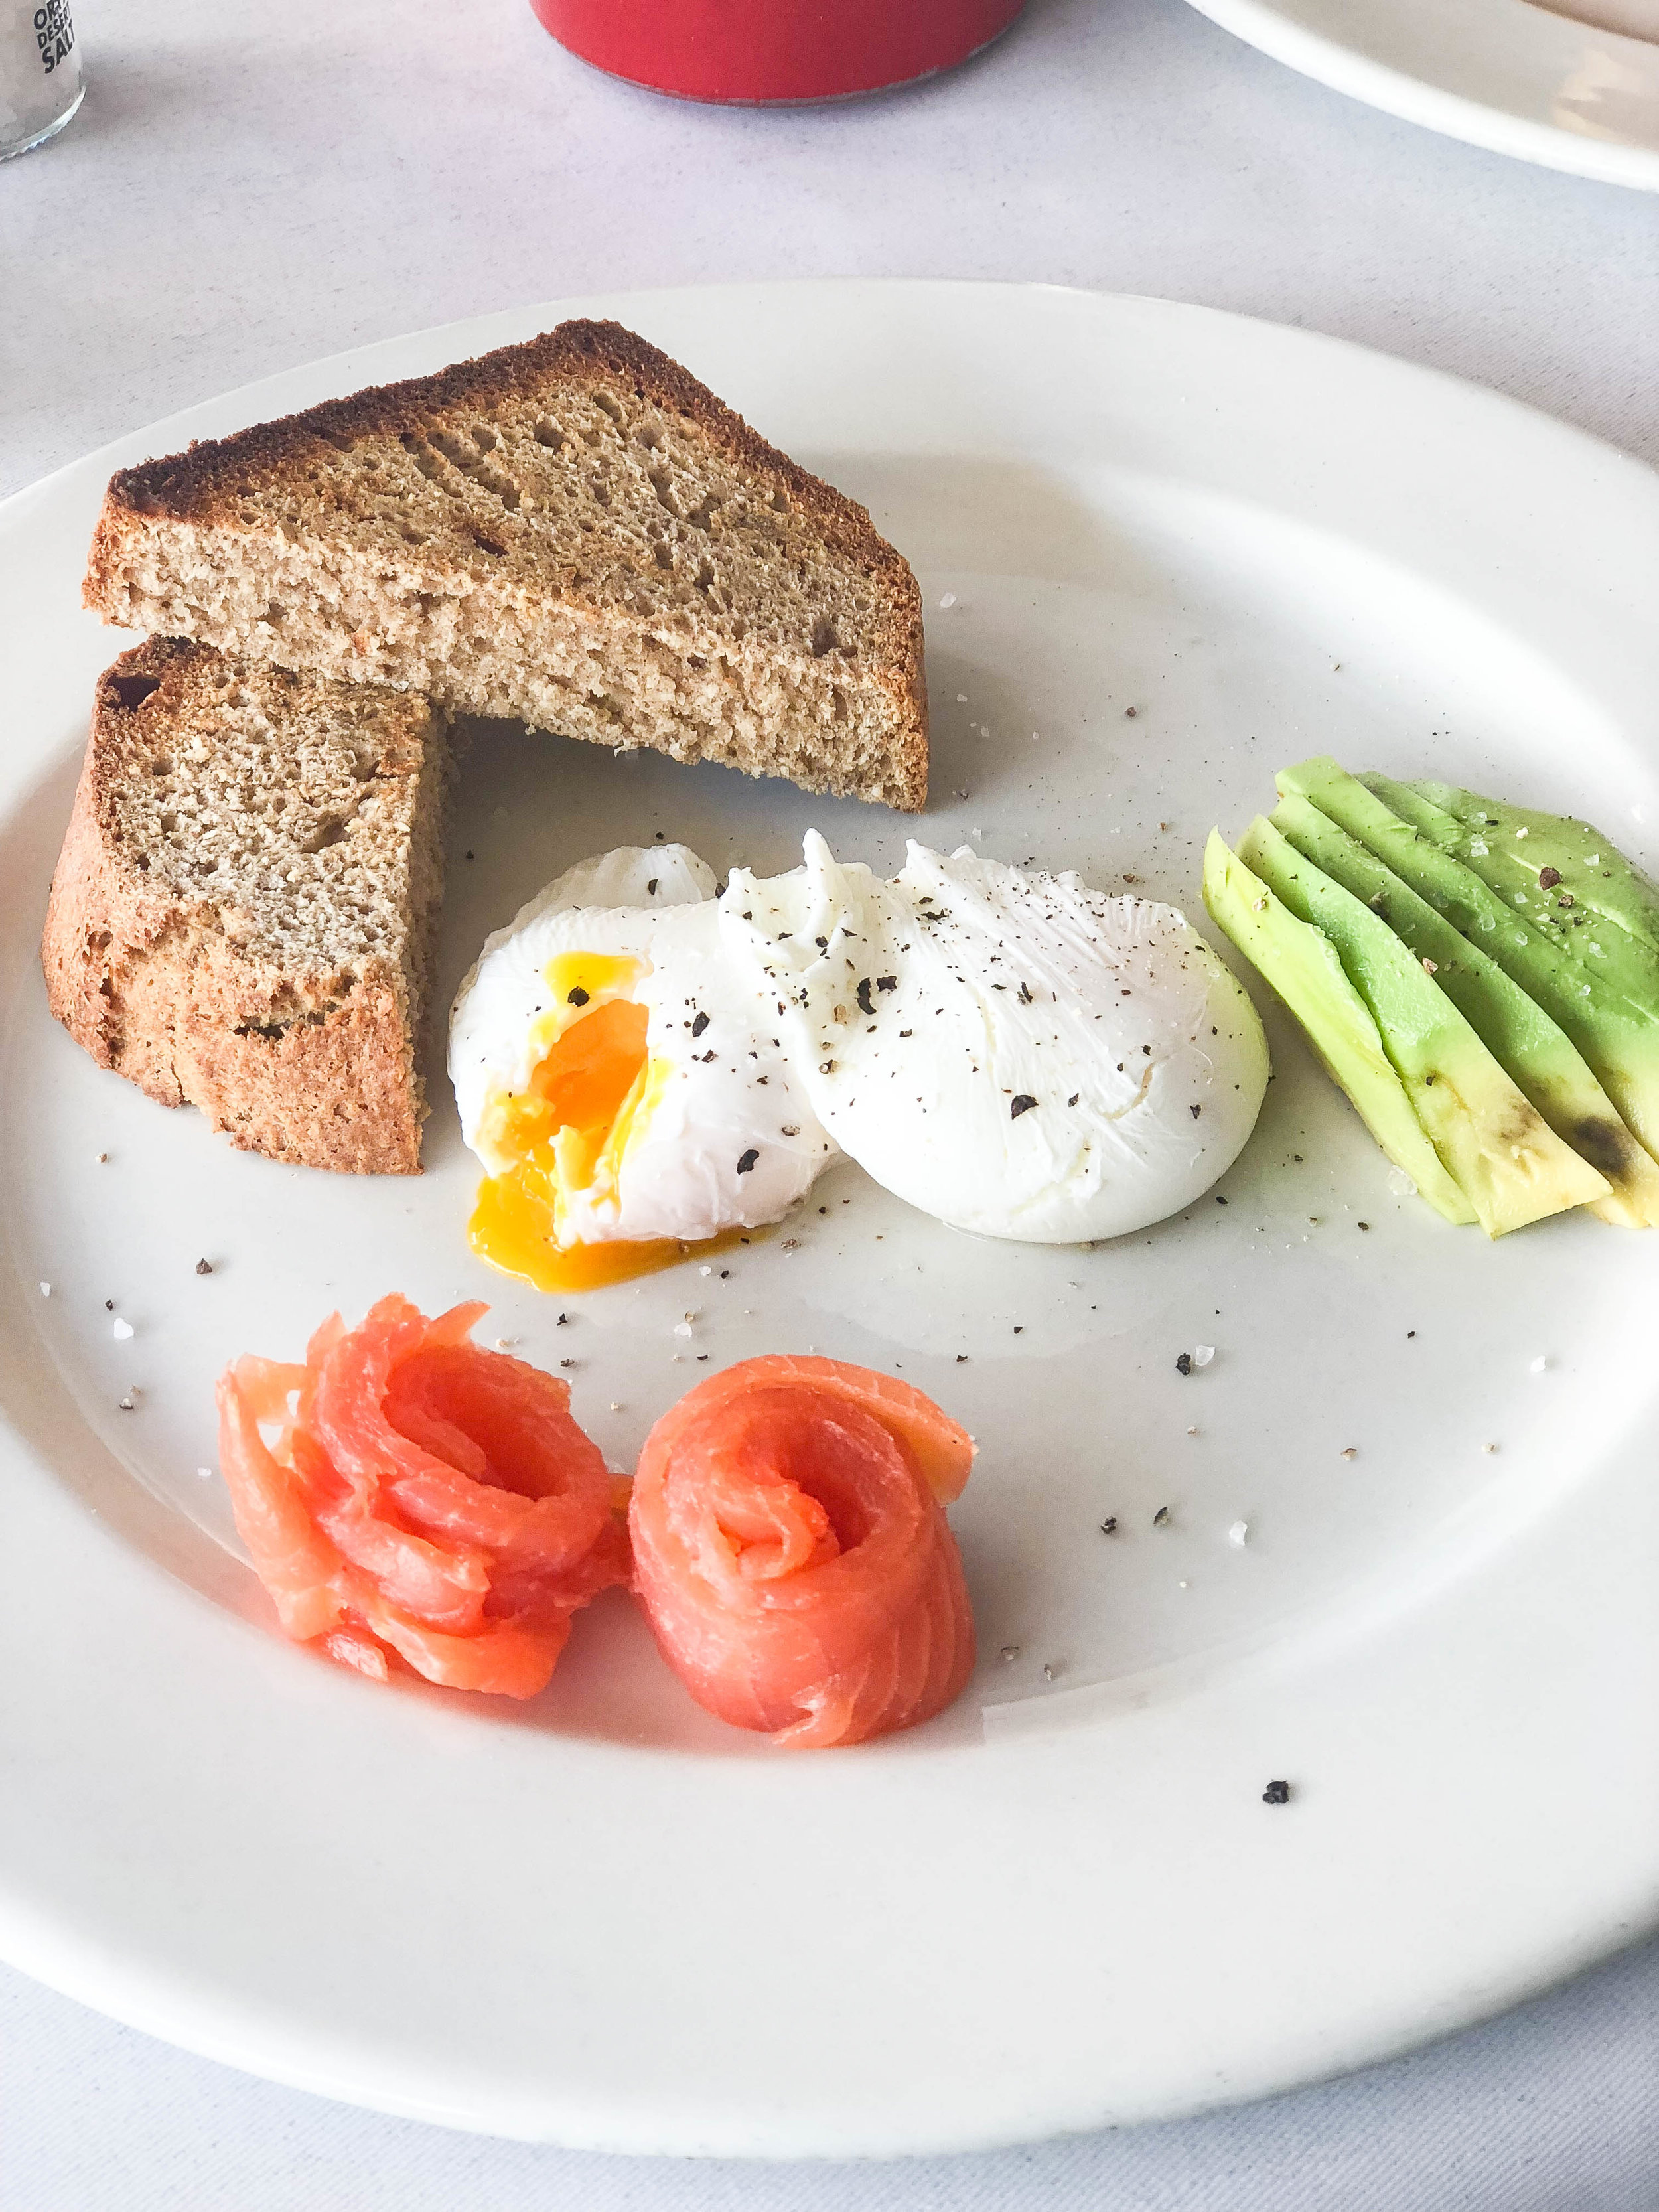 Coconut bread with poached eggs, avocado and smoked salmon